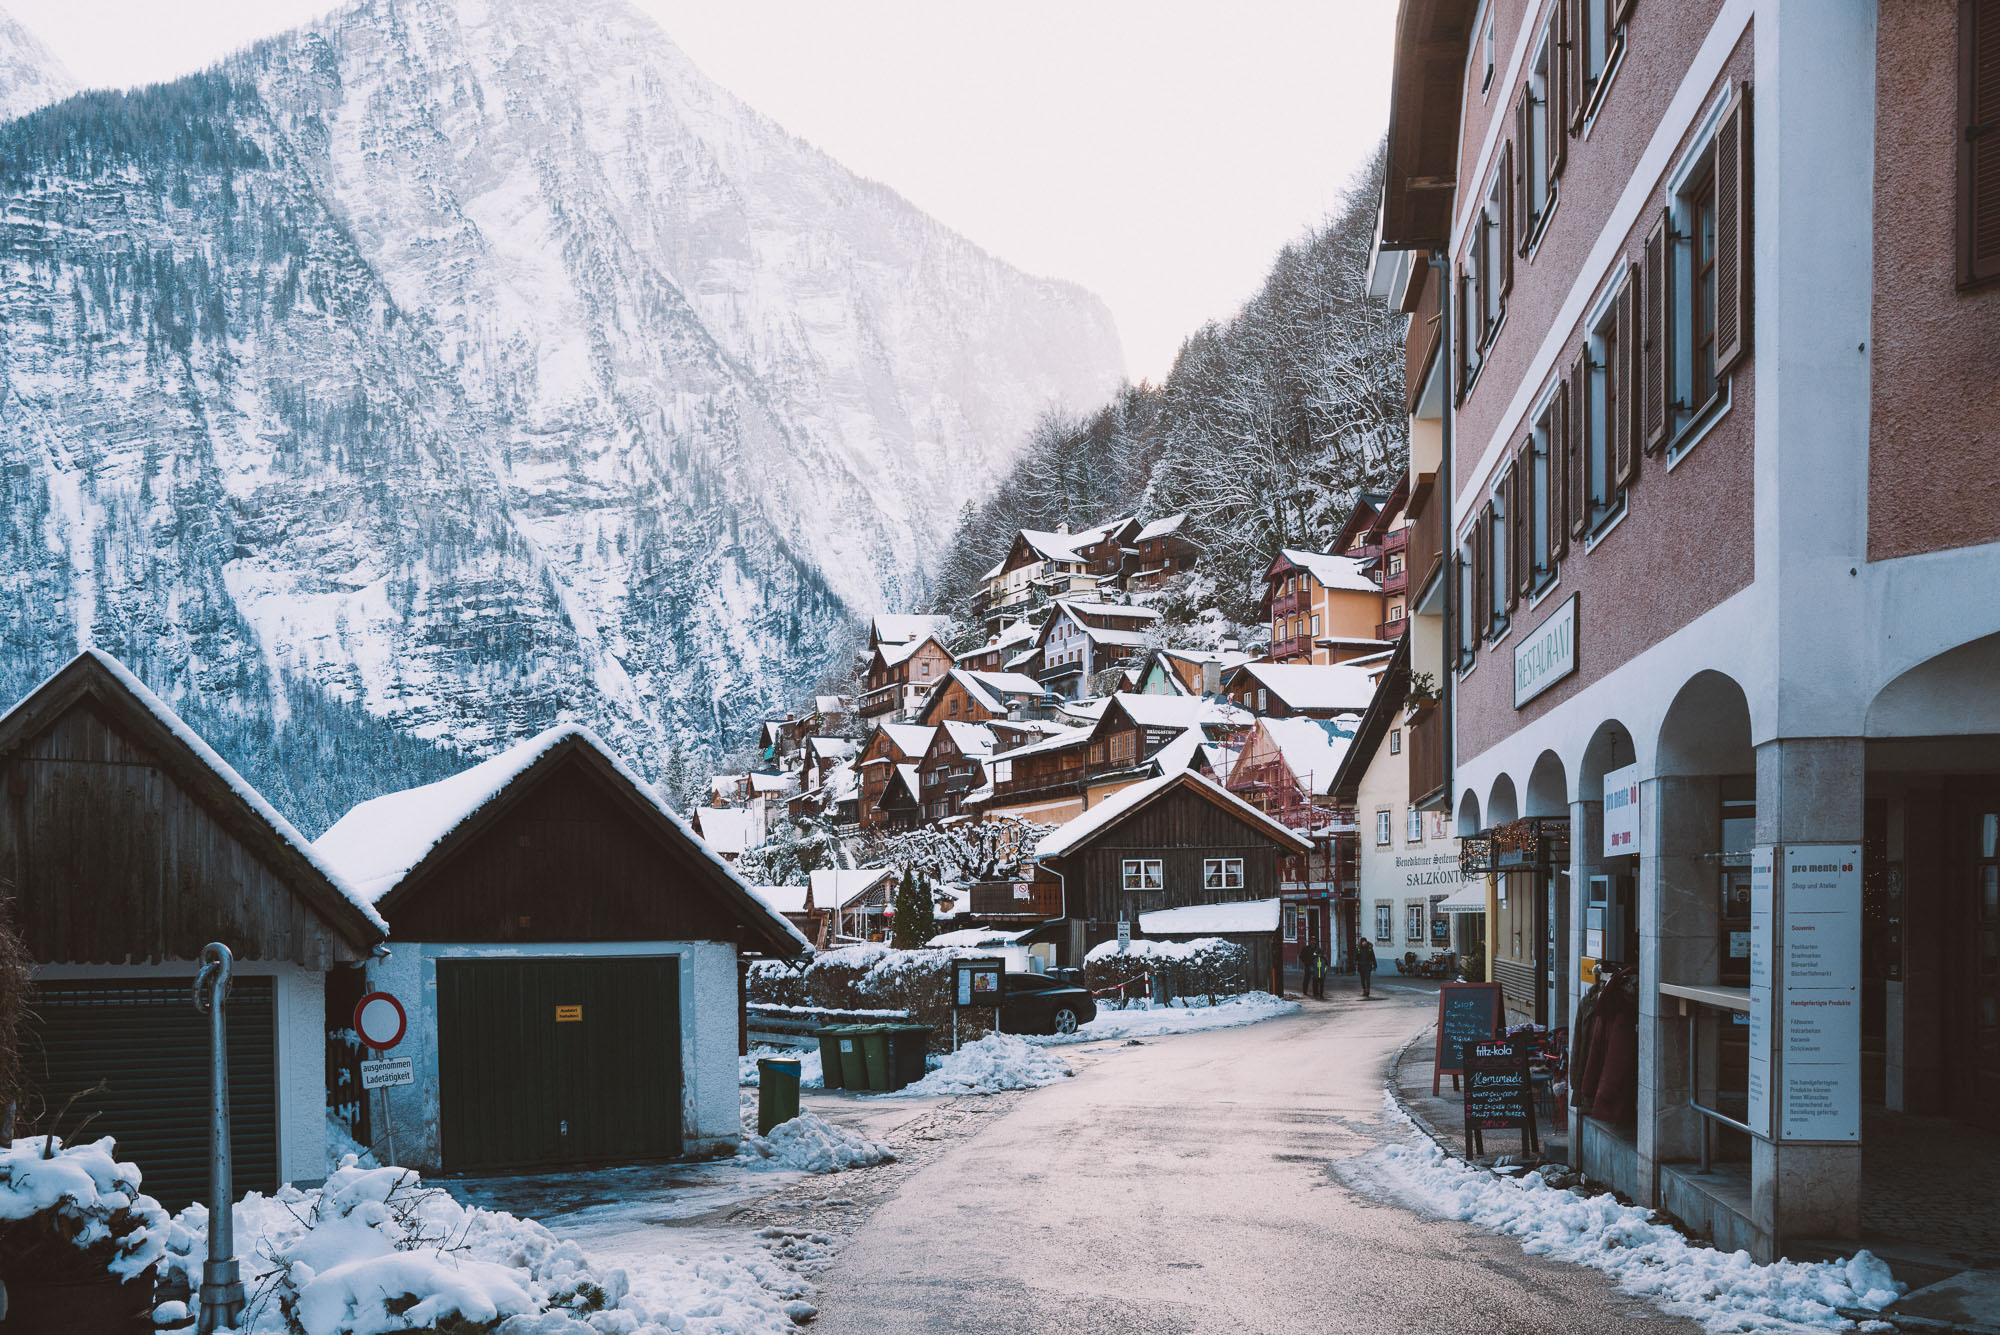 Dowtown Hallstatt Austria in the wintertime during the morning